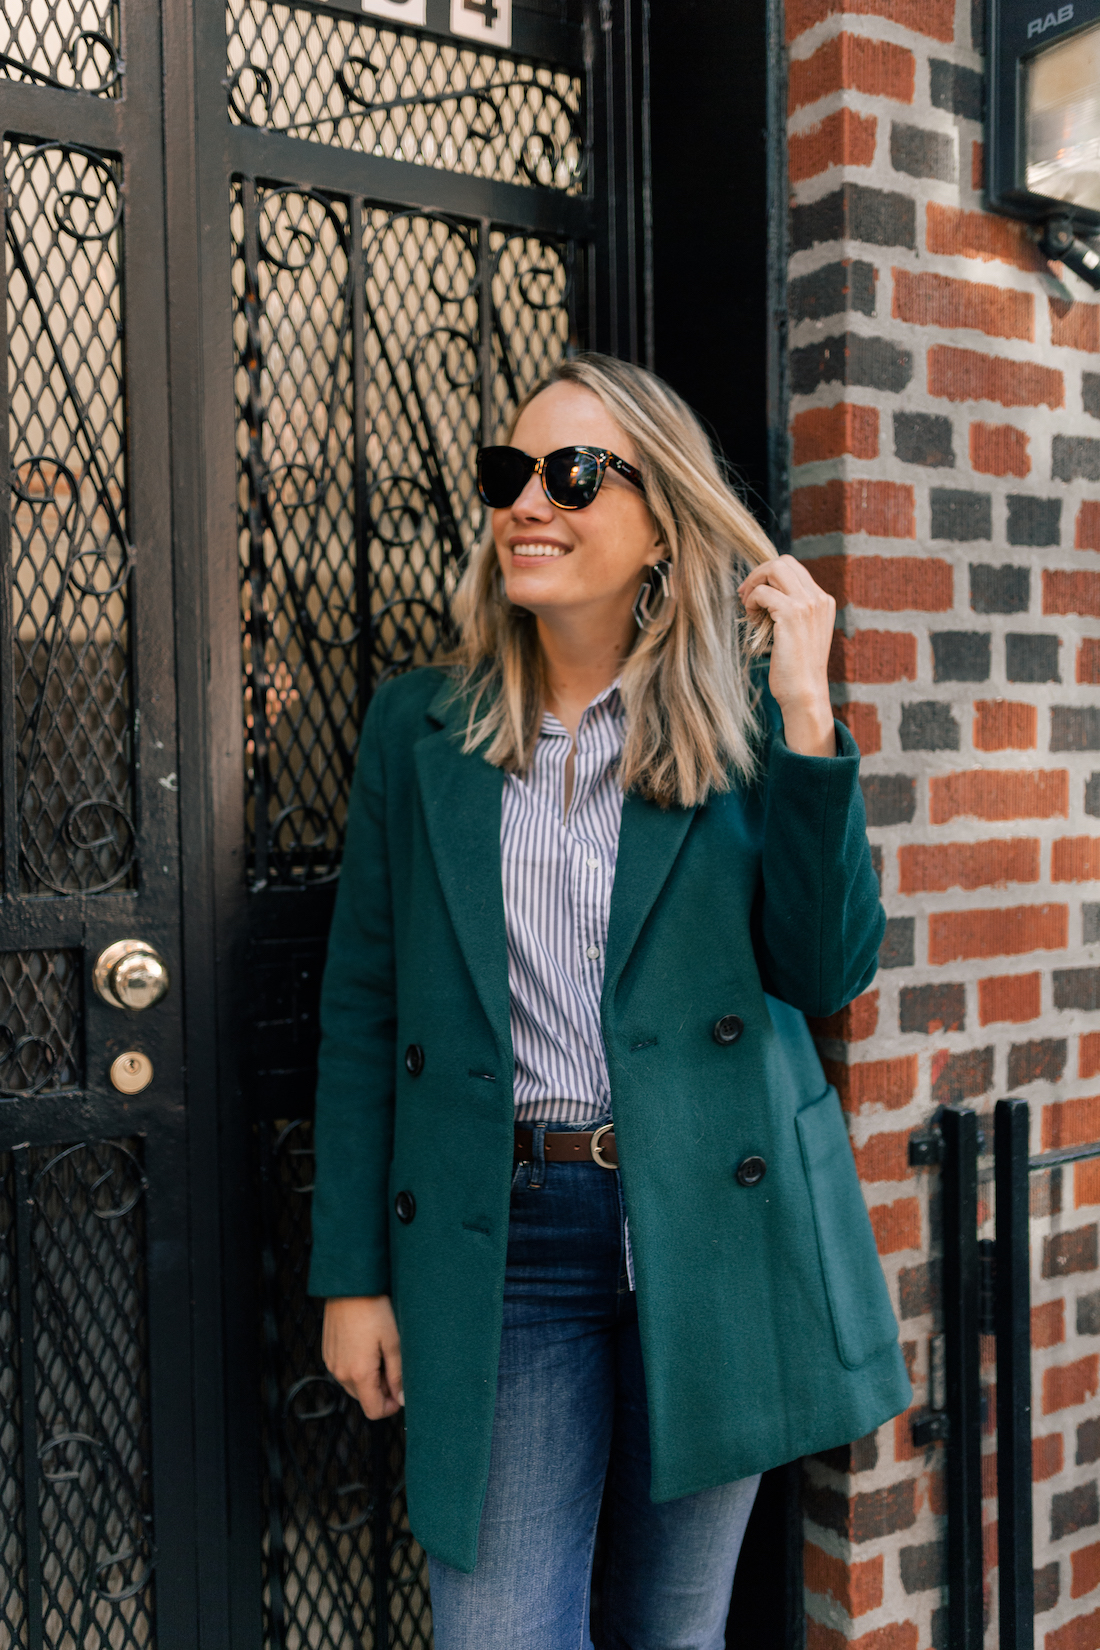 Madewell Coat // Frank & Eileen Classic Button Down Shirt // Good American Jeans // Polaroid Sunglasses // J.Crew Belt // Gucci Bag